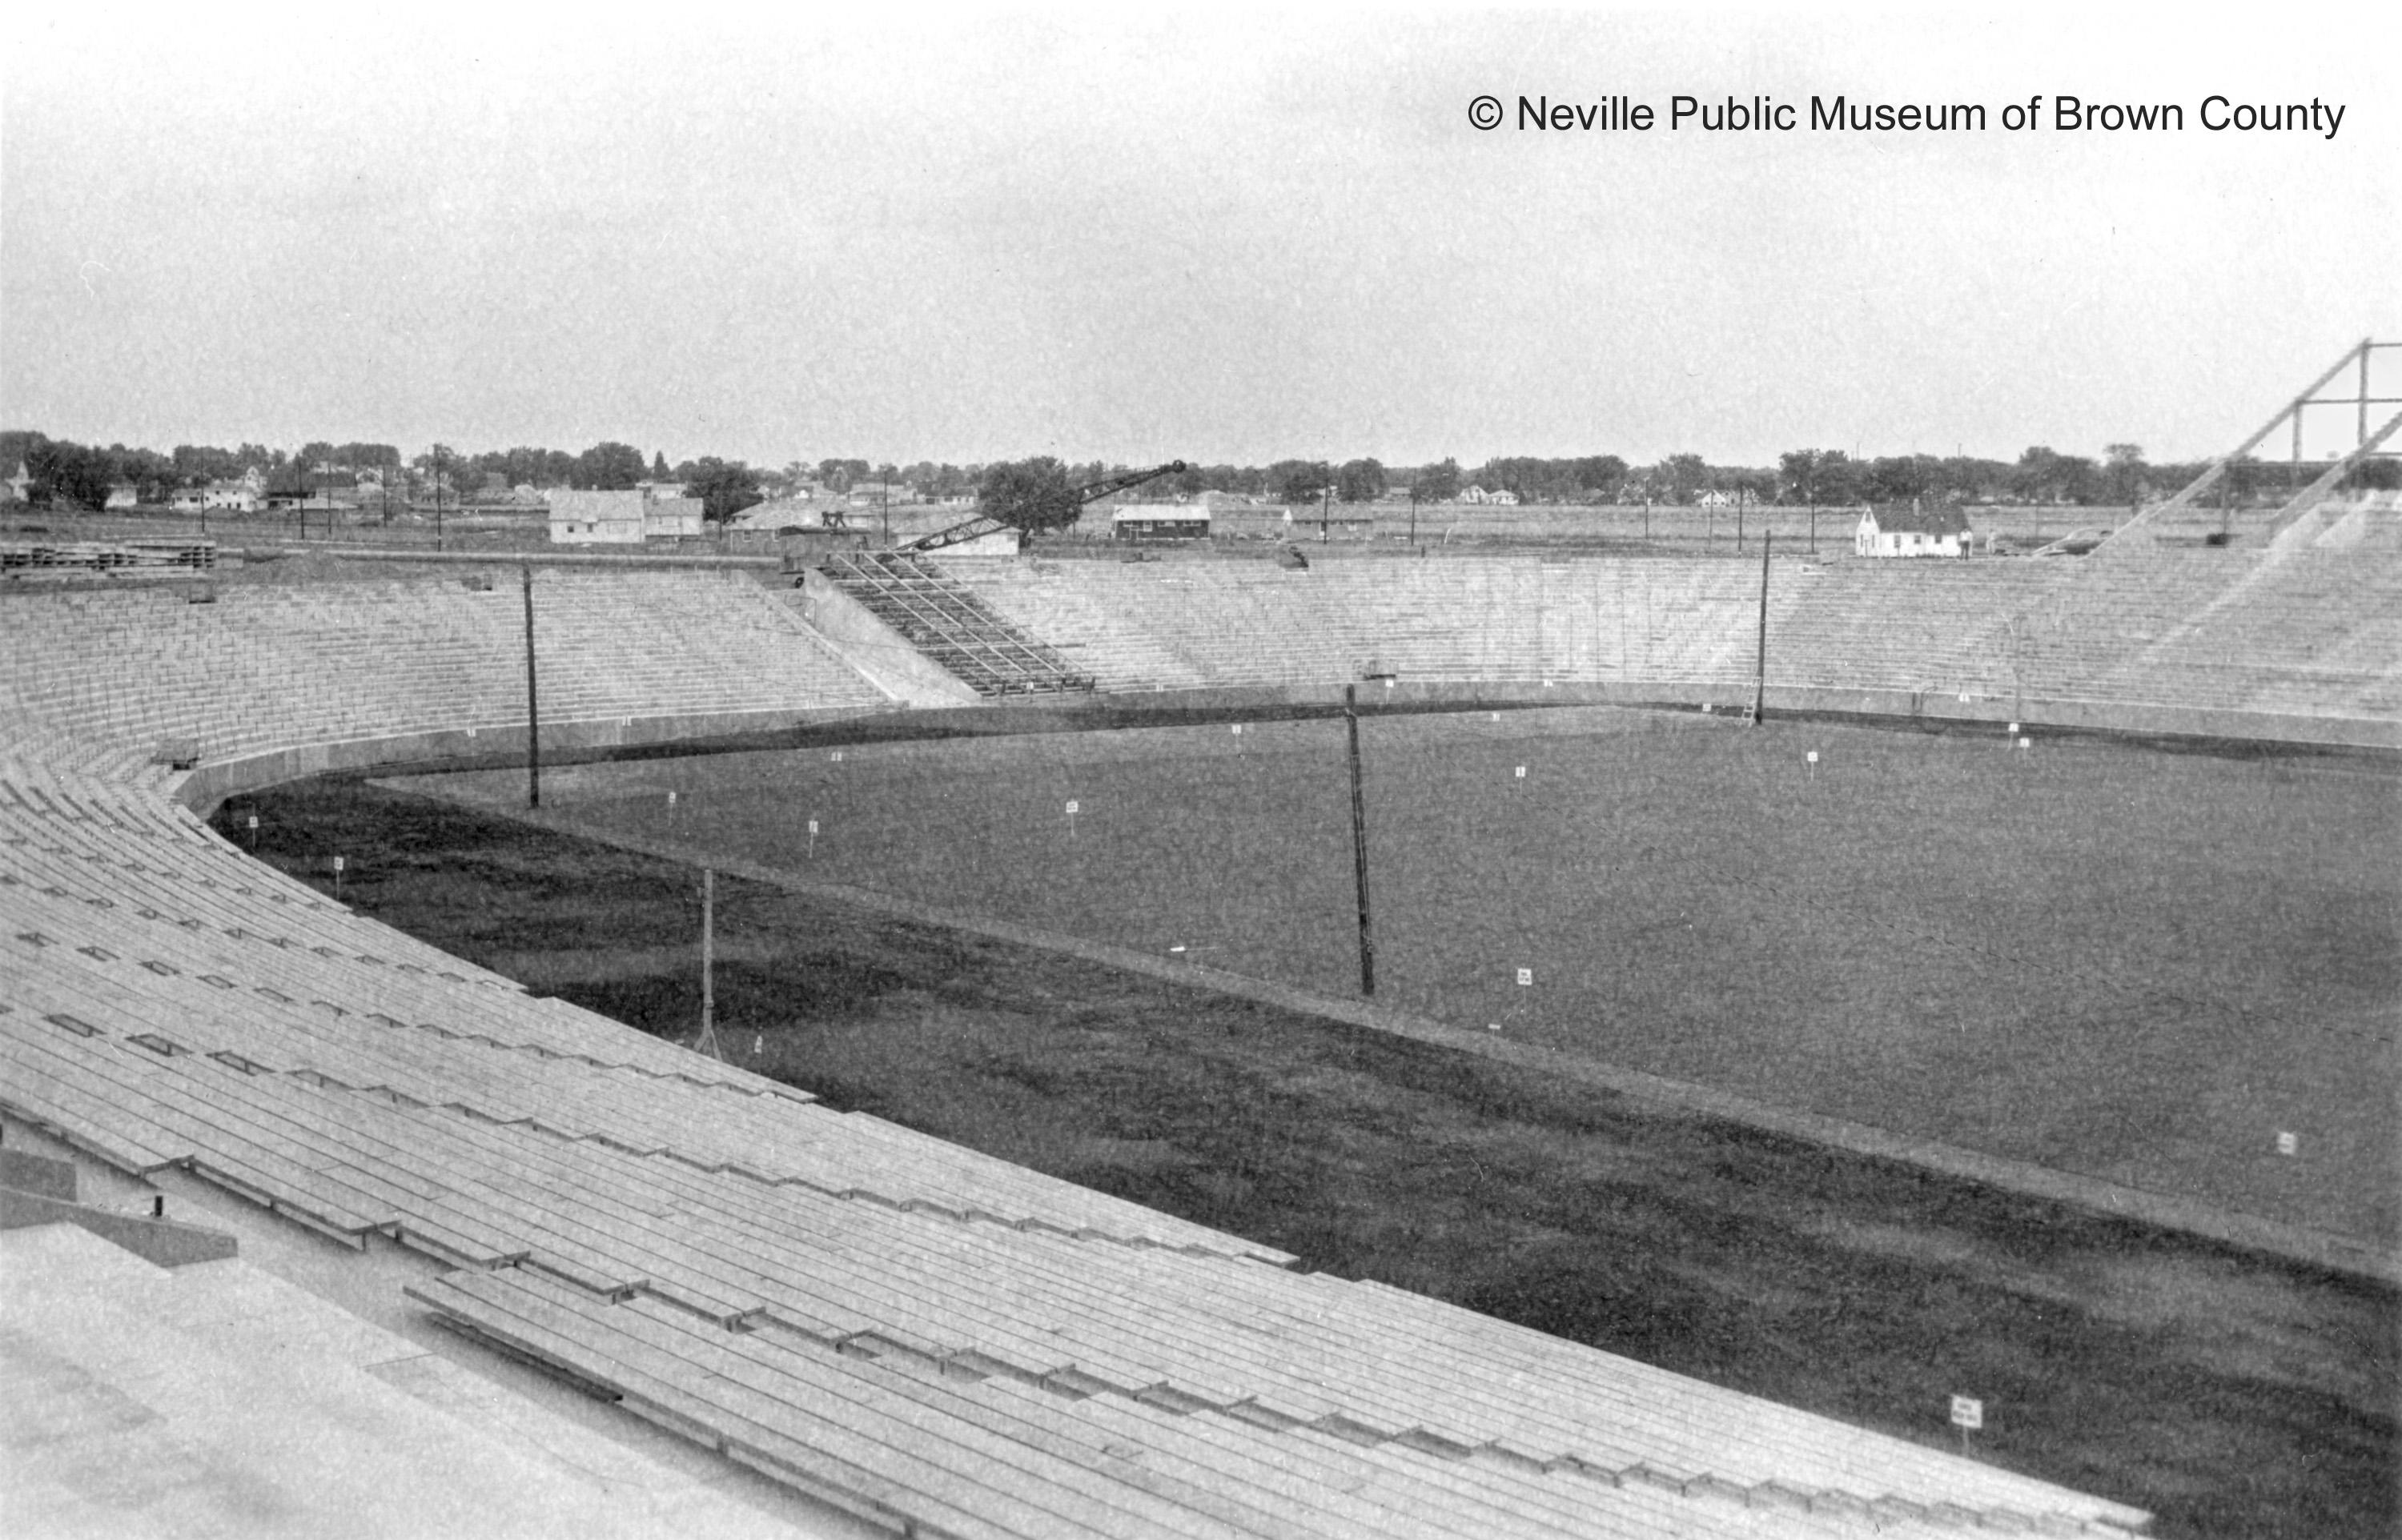 New City Stadium was built at the intersection of Ridge Road and Highland Avenue. Construction was done by Geo. M. Hougard & Sons, Inc. (Courtesy: Neville Public Museum of Brown County)